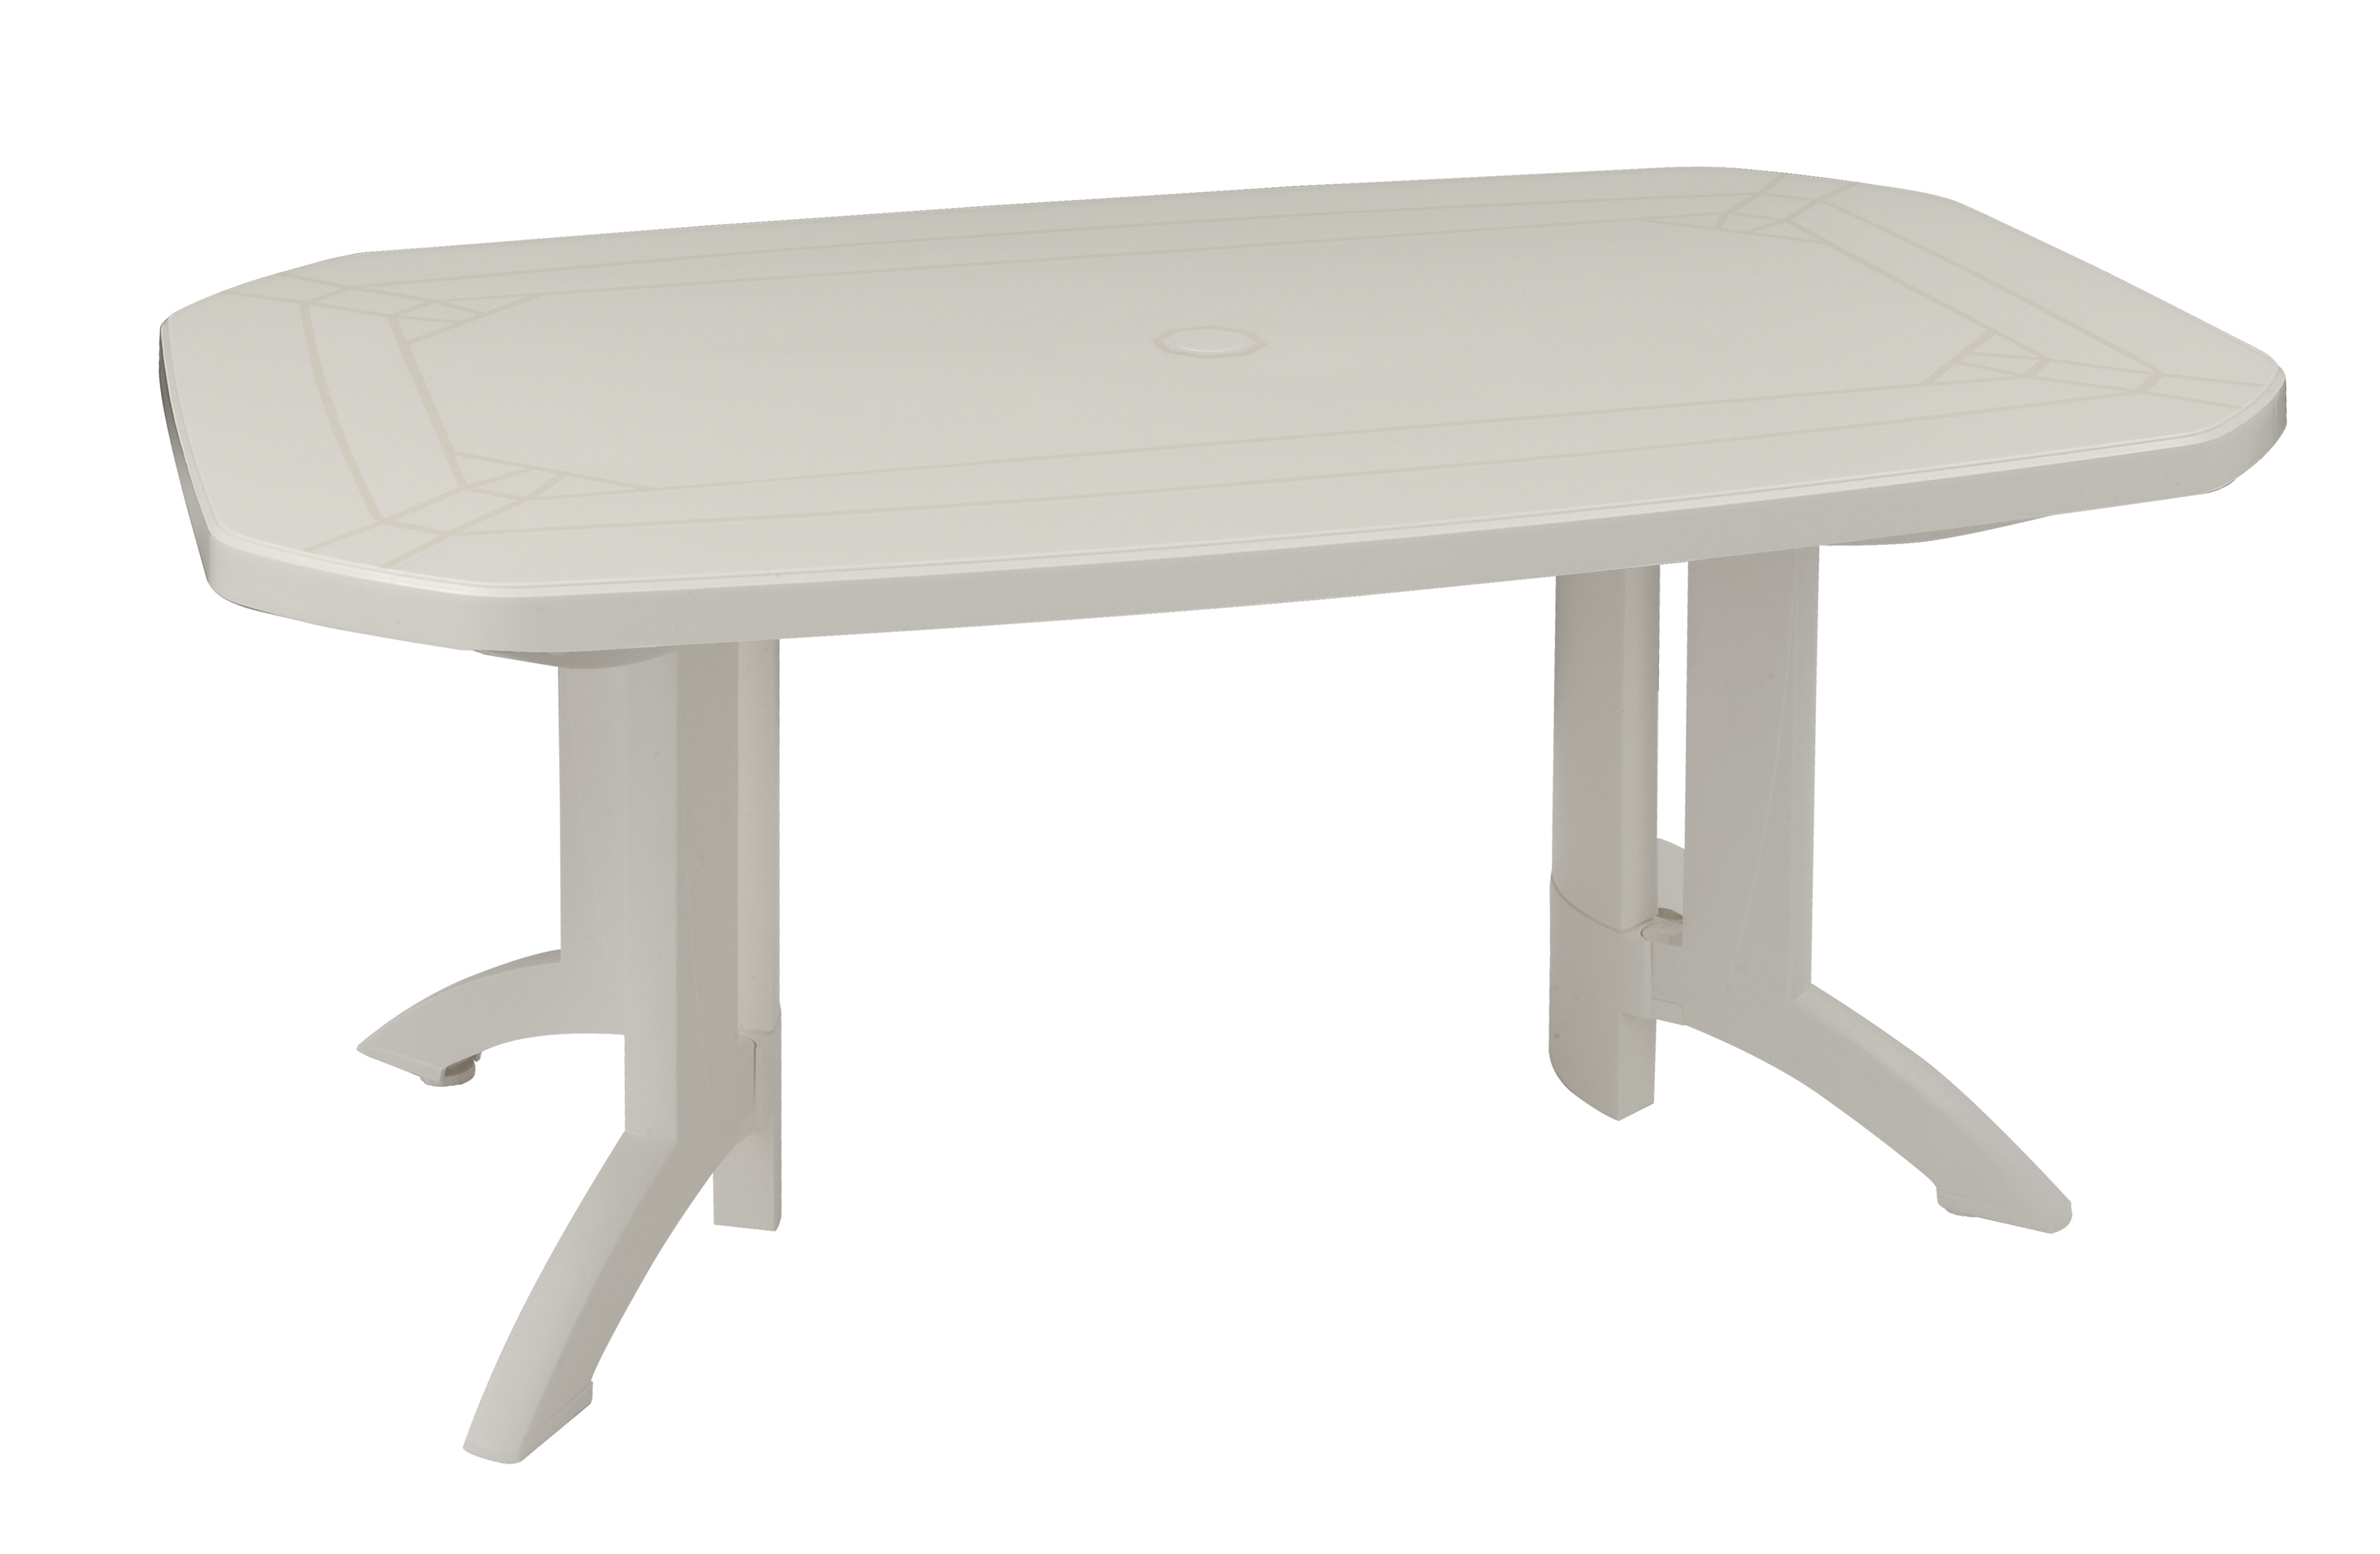 Tables de jardin Vega 220 & 165 cm | Grosfillex